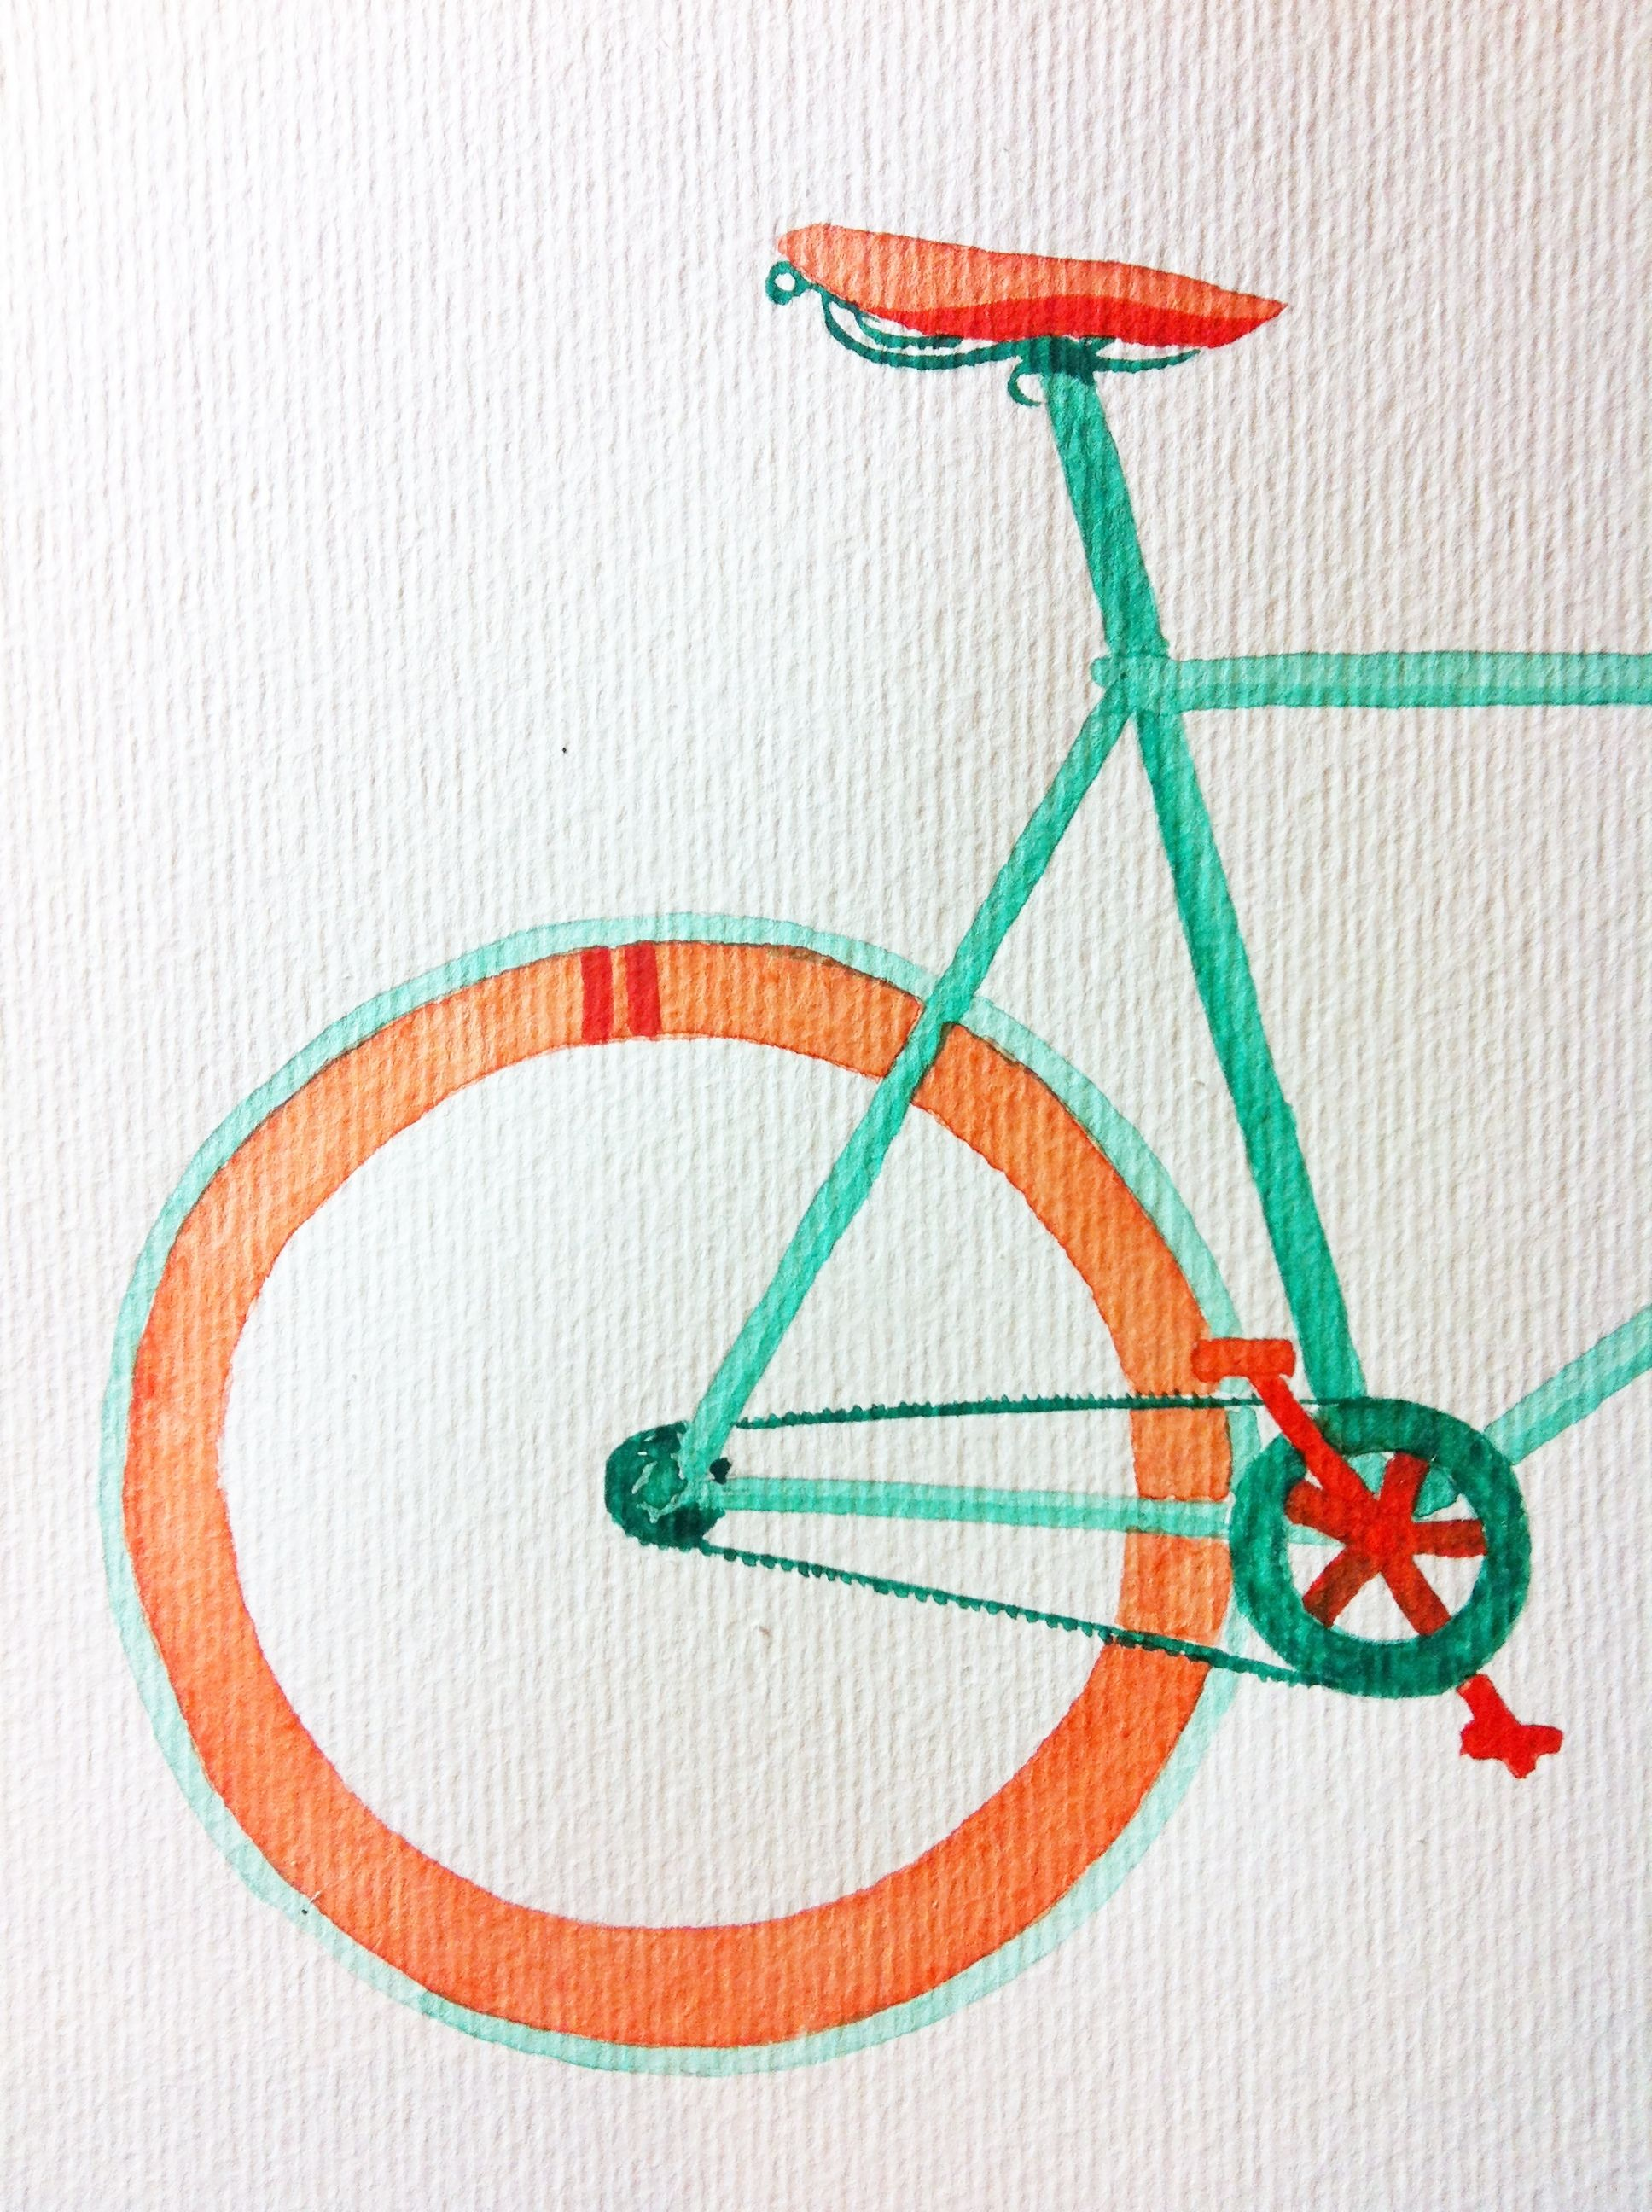 Watercolour Bicycle, by Serena Olivieri | art | Pinterest | Hochrad ...